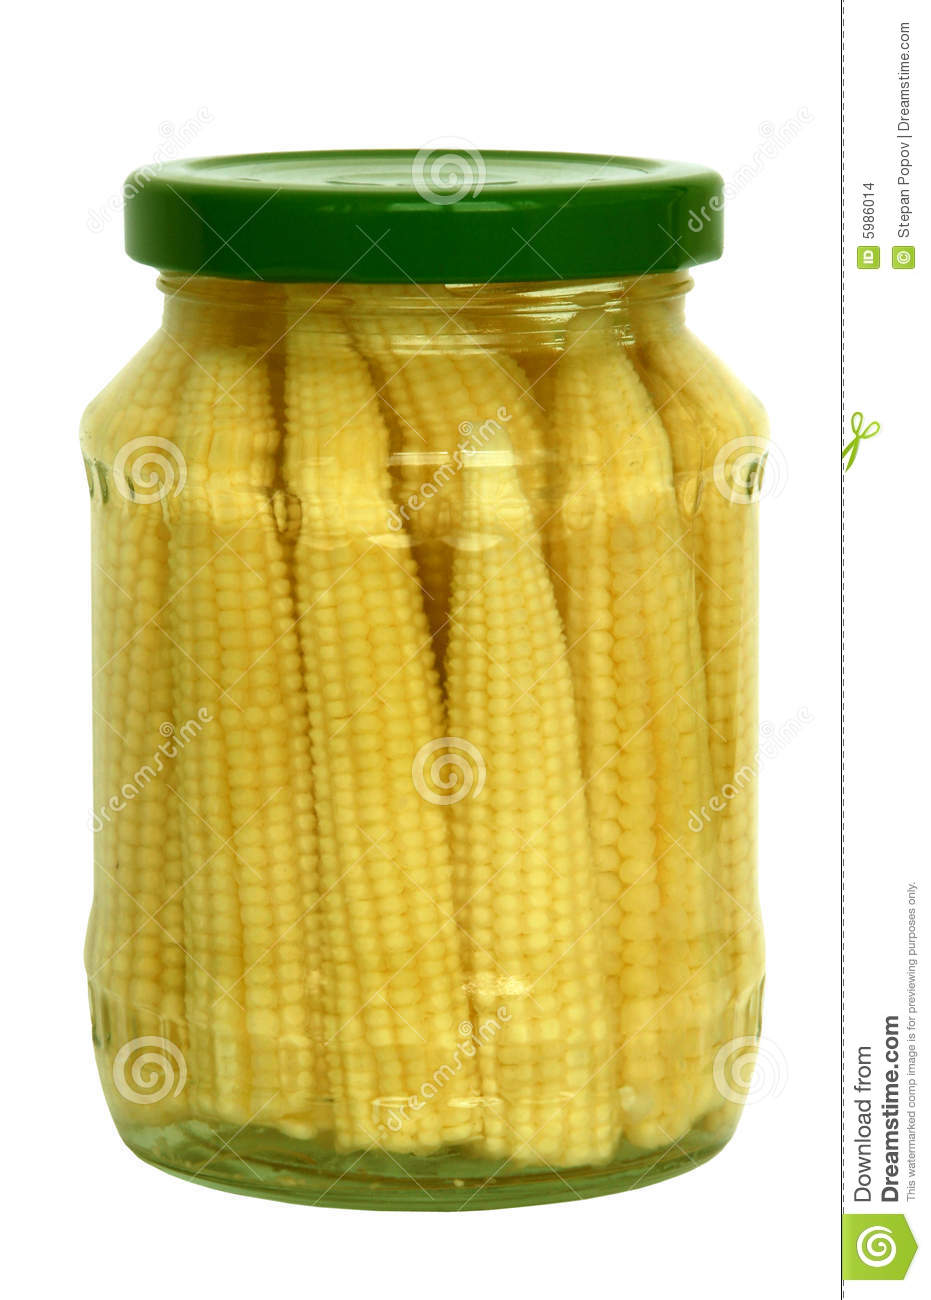 Pickled Baby Corn Cobs Stock Images - Image: 5986014